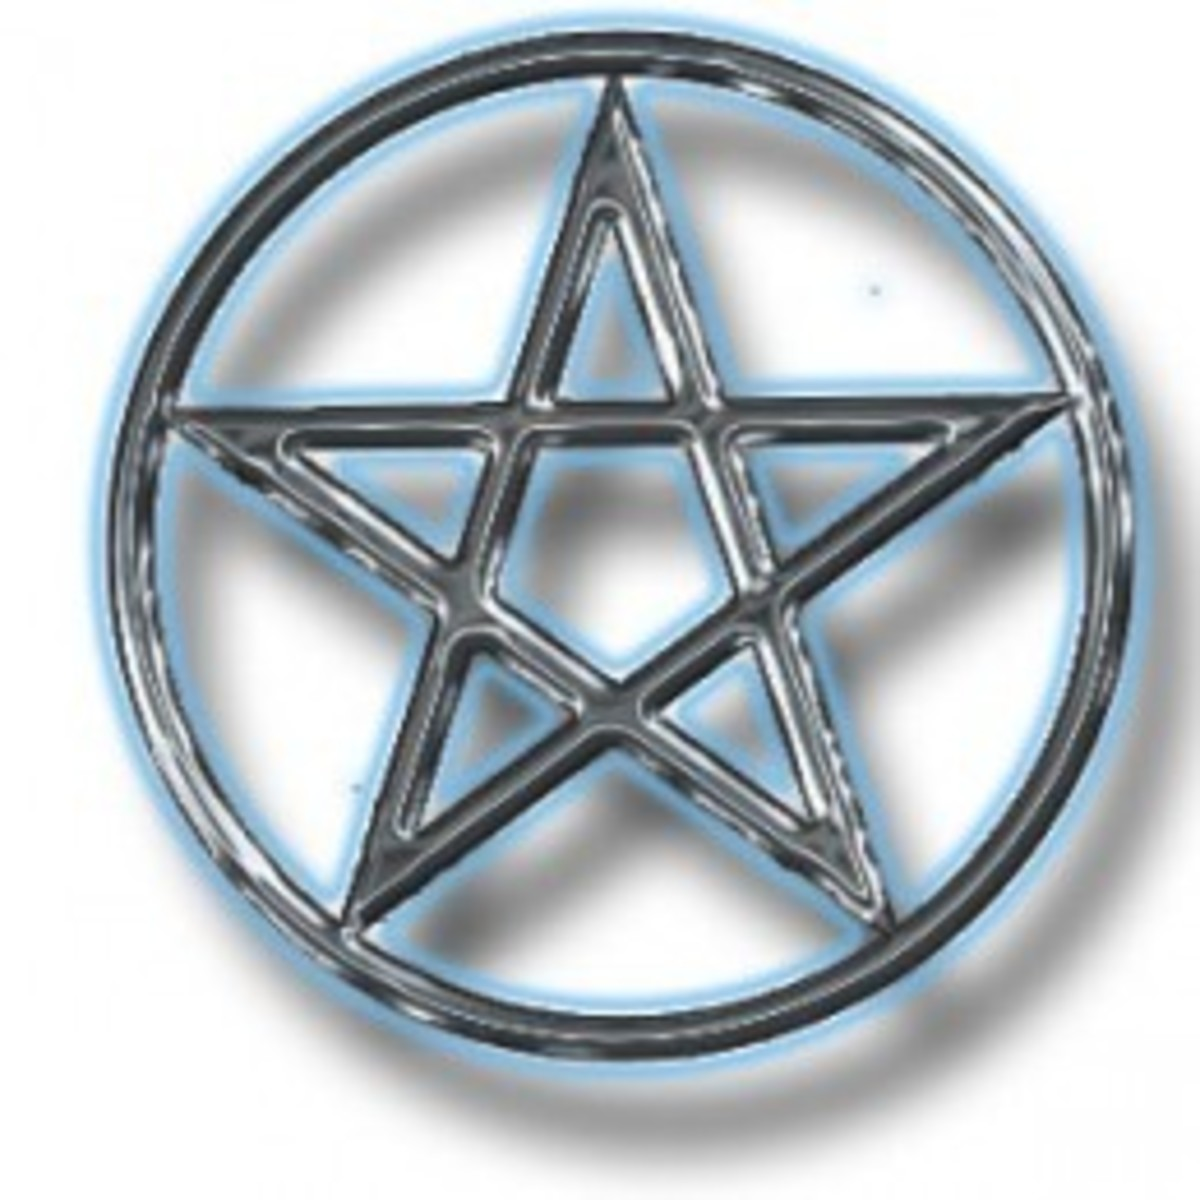 a-witch-who-cannot-hex-cannot-heal-one-wiccans-perspective-on-this-controversial-claim